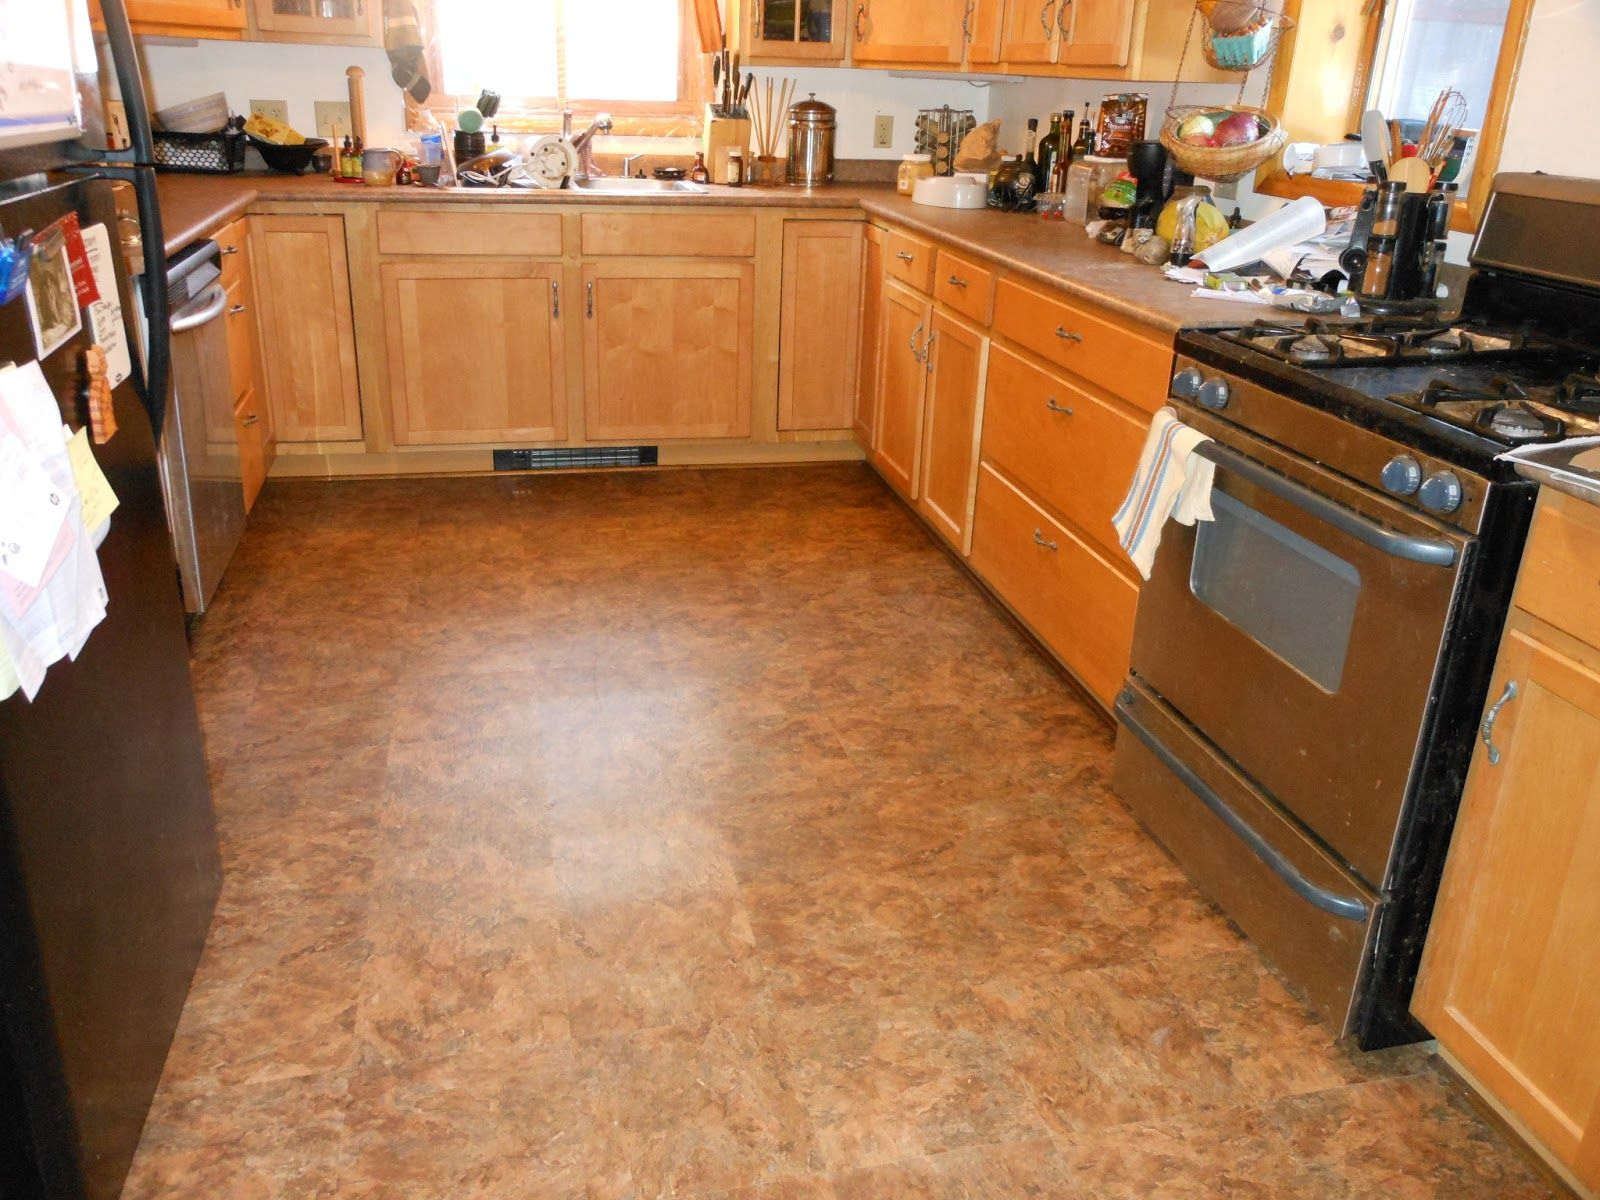 1000+ images about kitchen flooring ideas on Pinterest - ^